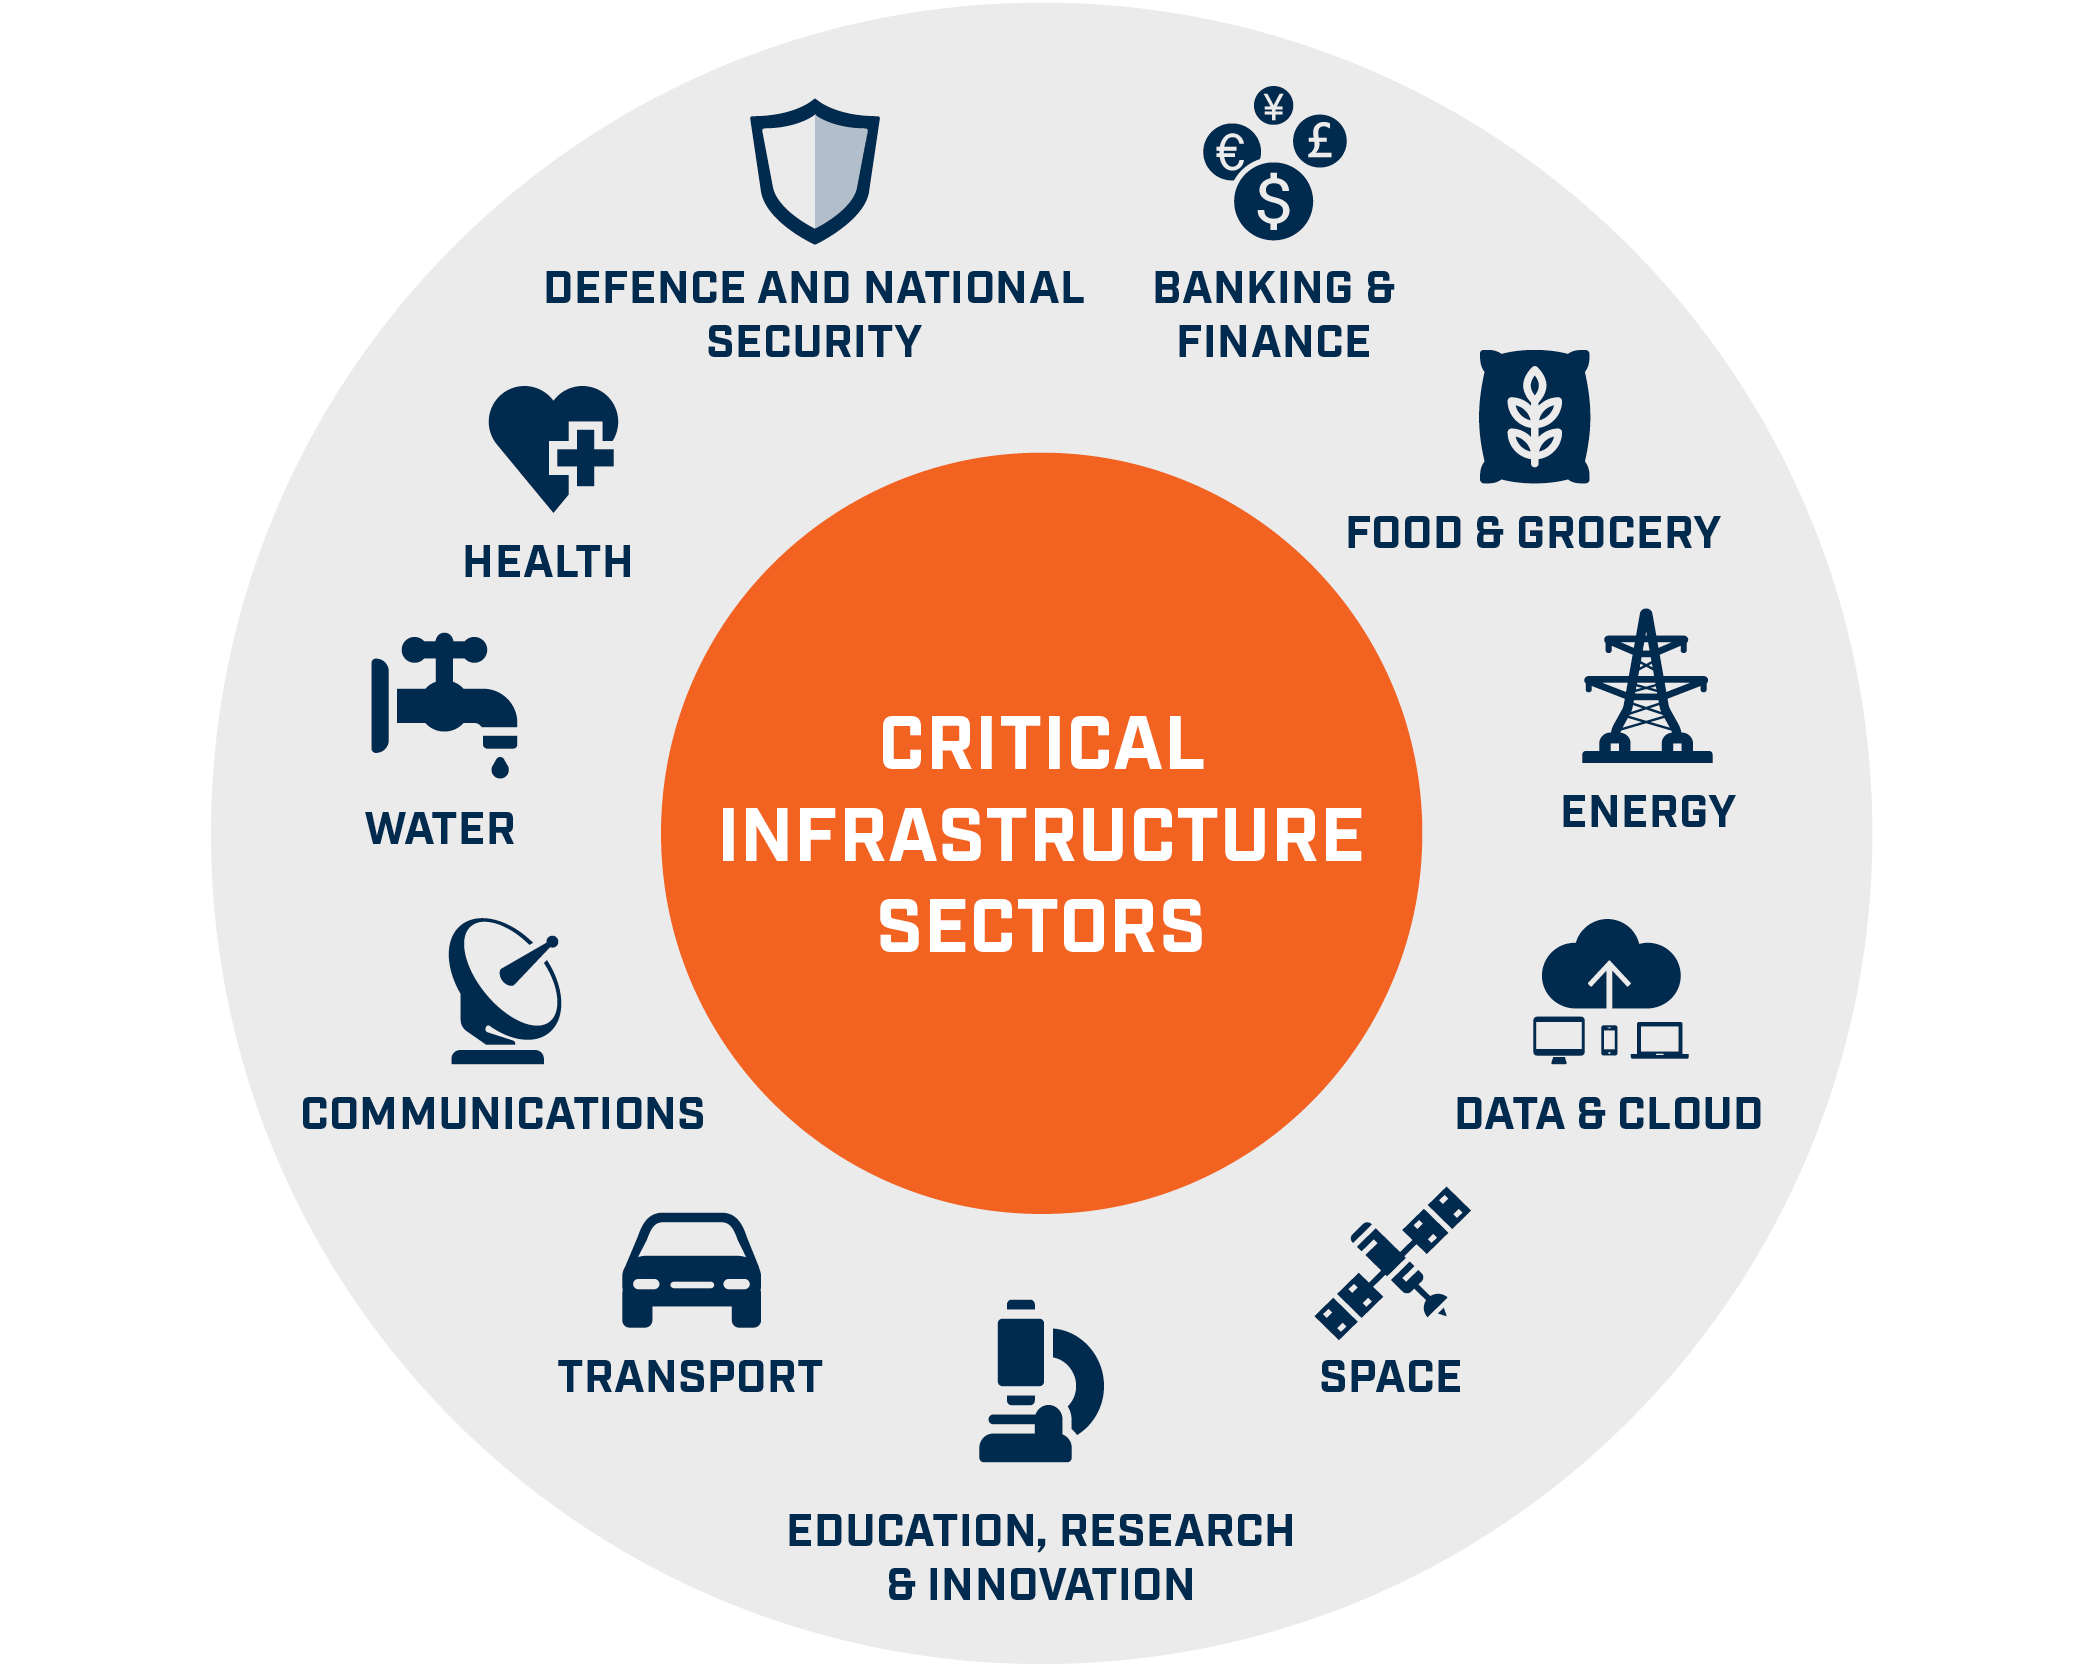 an image showing the industries that constitute Critical Infrastructure